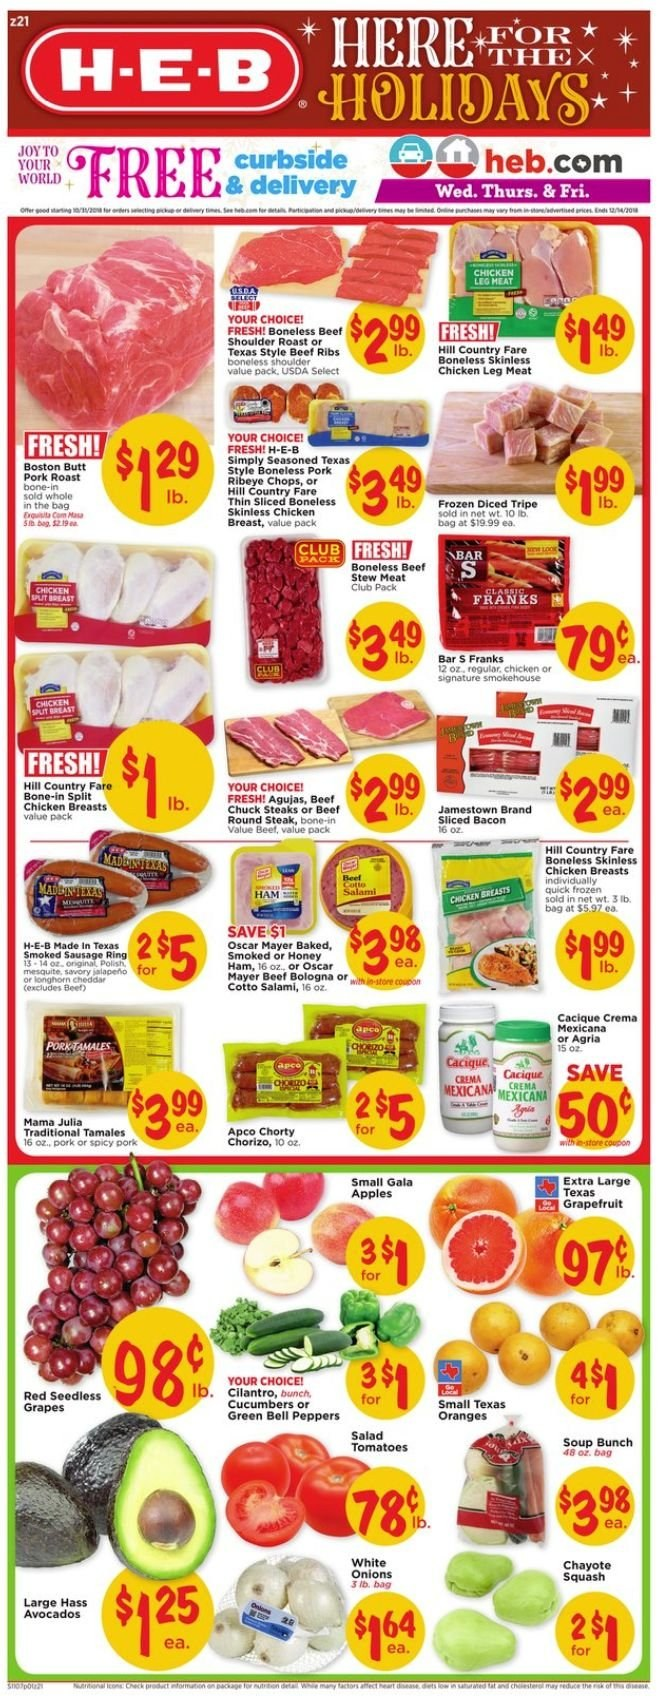 H-E-B Flyer  - 11.07.2018 - 11.13.2018. Page 1.